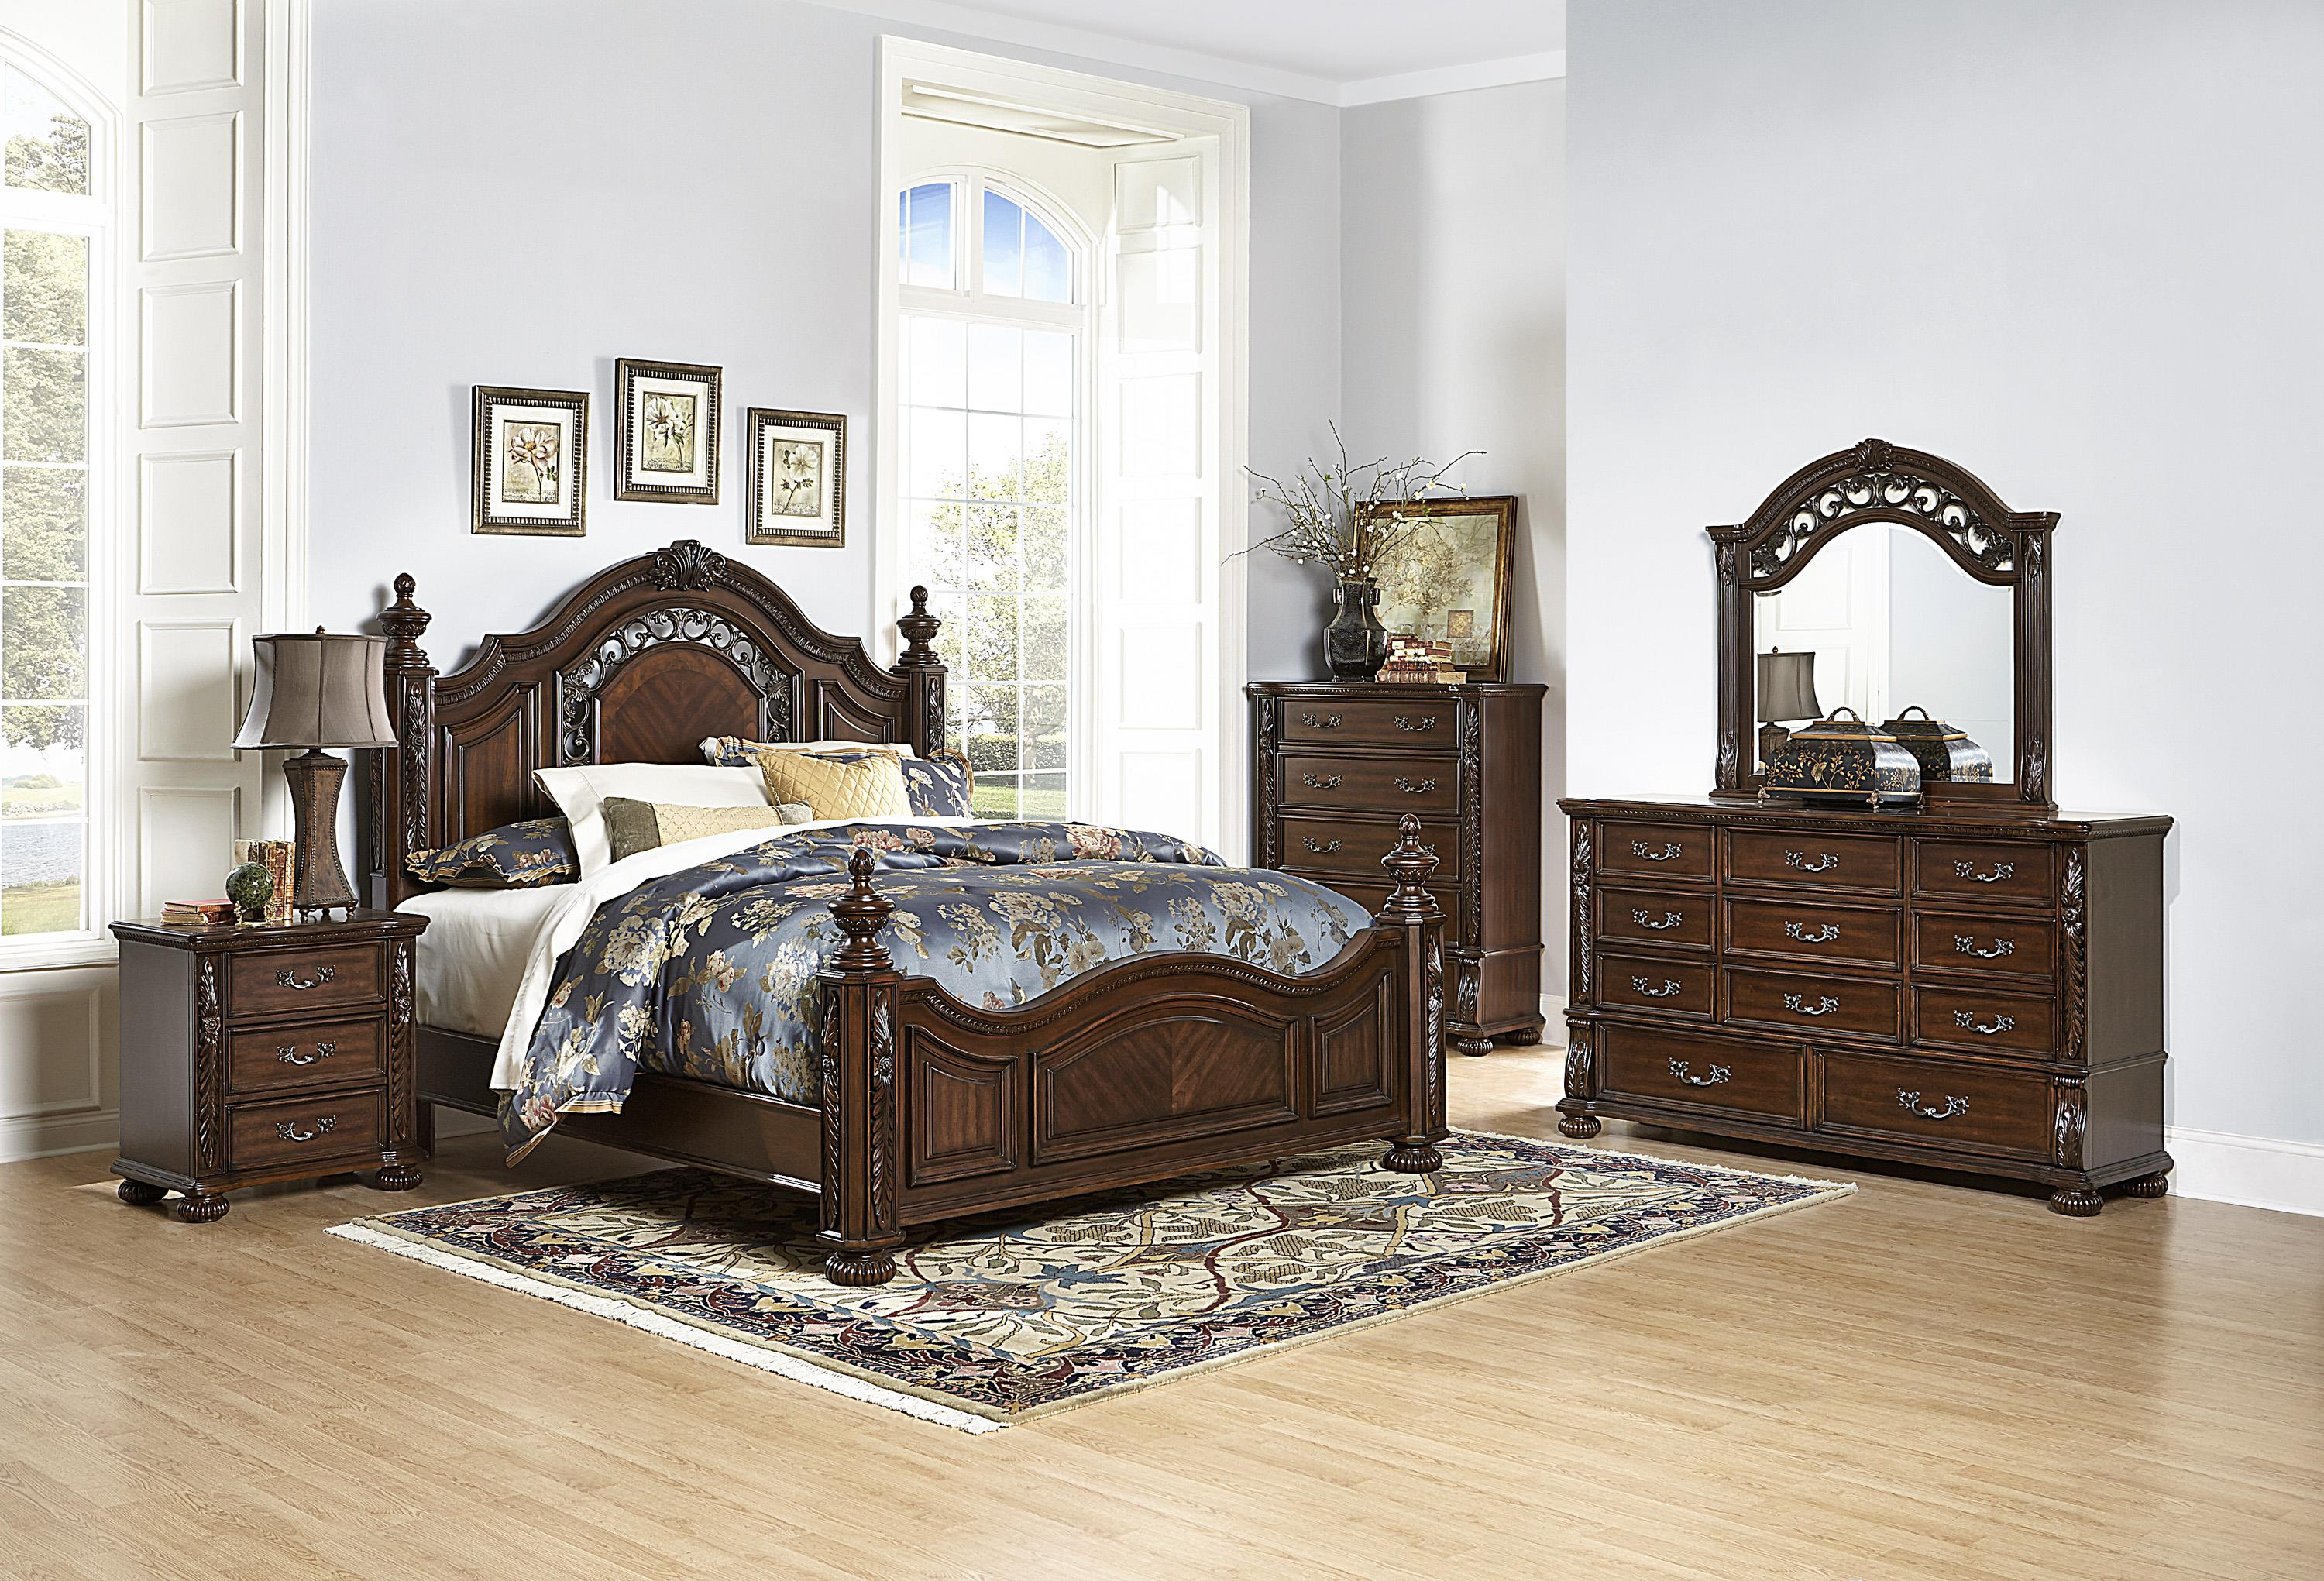 Emery Traditional Queen Bed with Extravagant Details   Walker s Furniture    Headboard   Footboard Spokane  Kennewick  Tri Cities  Wenatchee  Coeur  D Alene. Emery Traditional Queen Bed with Extravagant Details   Walker s